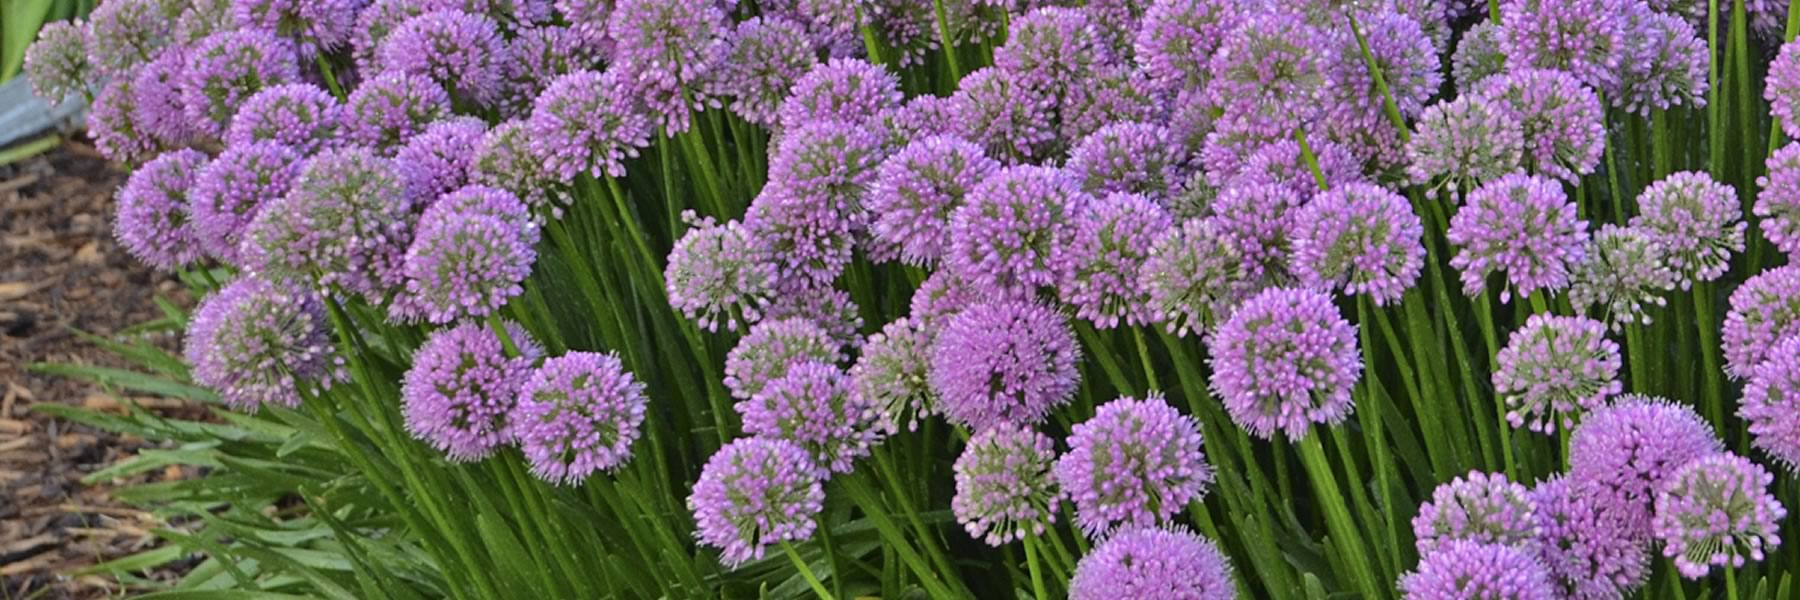 Allium Millenium 2018 Perennial Plant of the Year